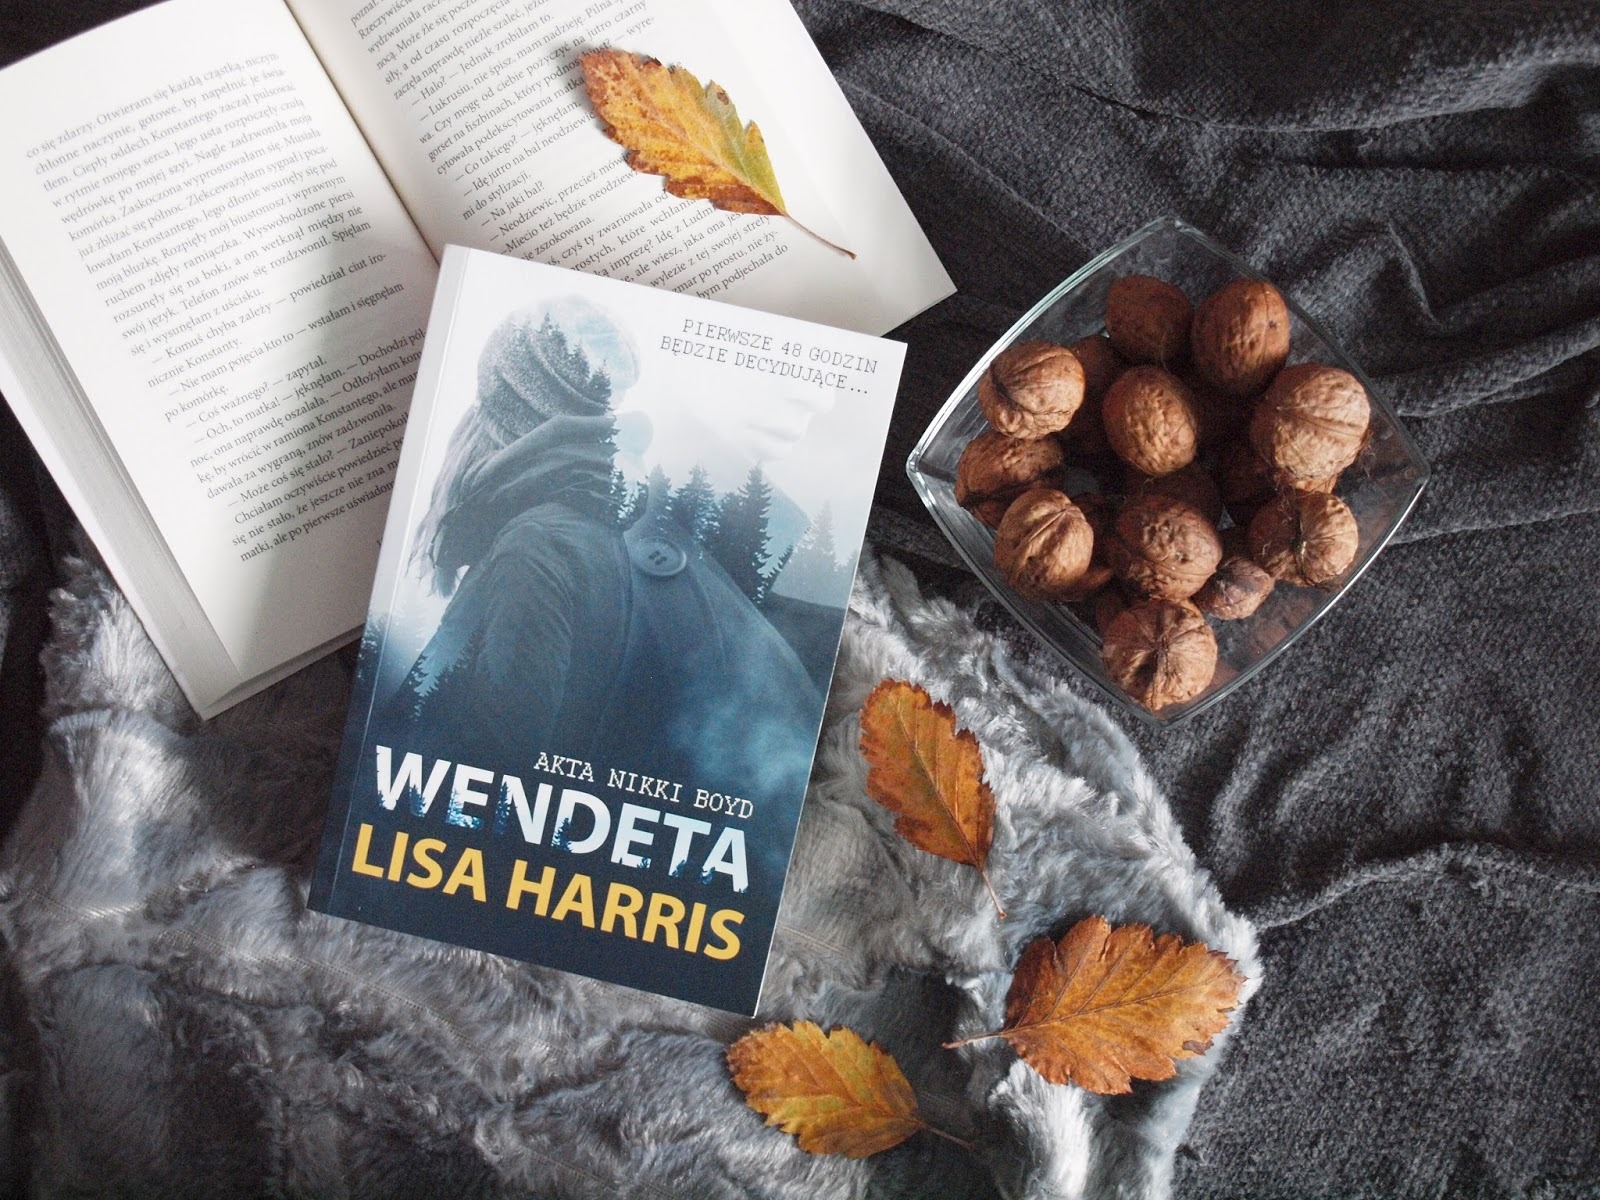 Wendeta - Lisa Harris